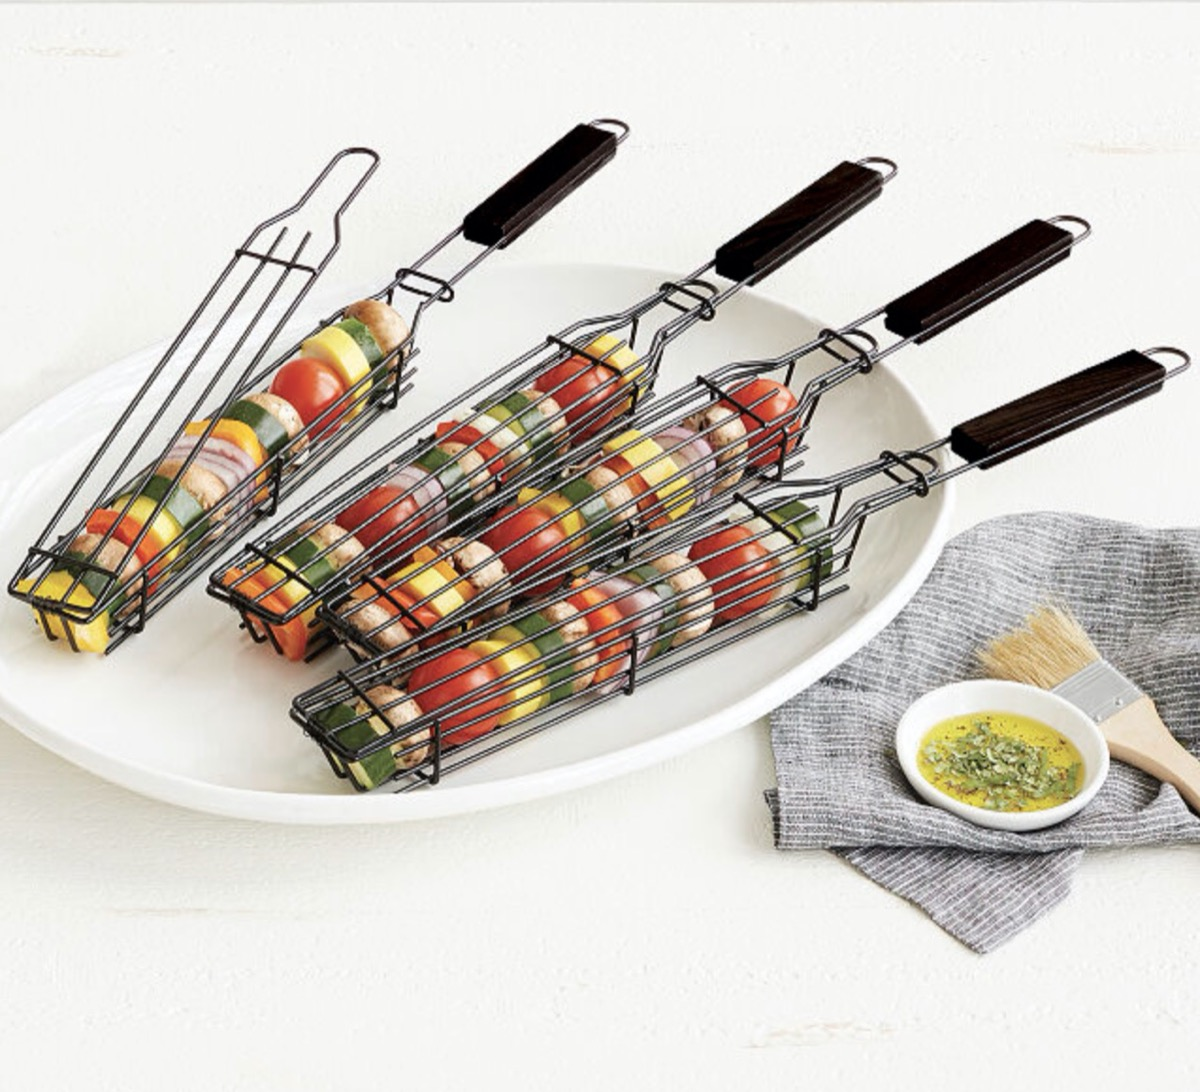 kabob grilling baskets on white plate next to small dish of oil